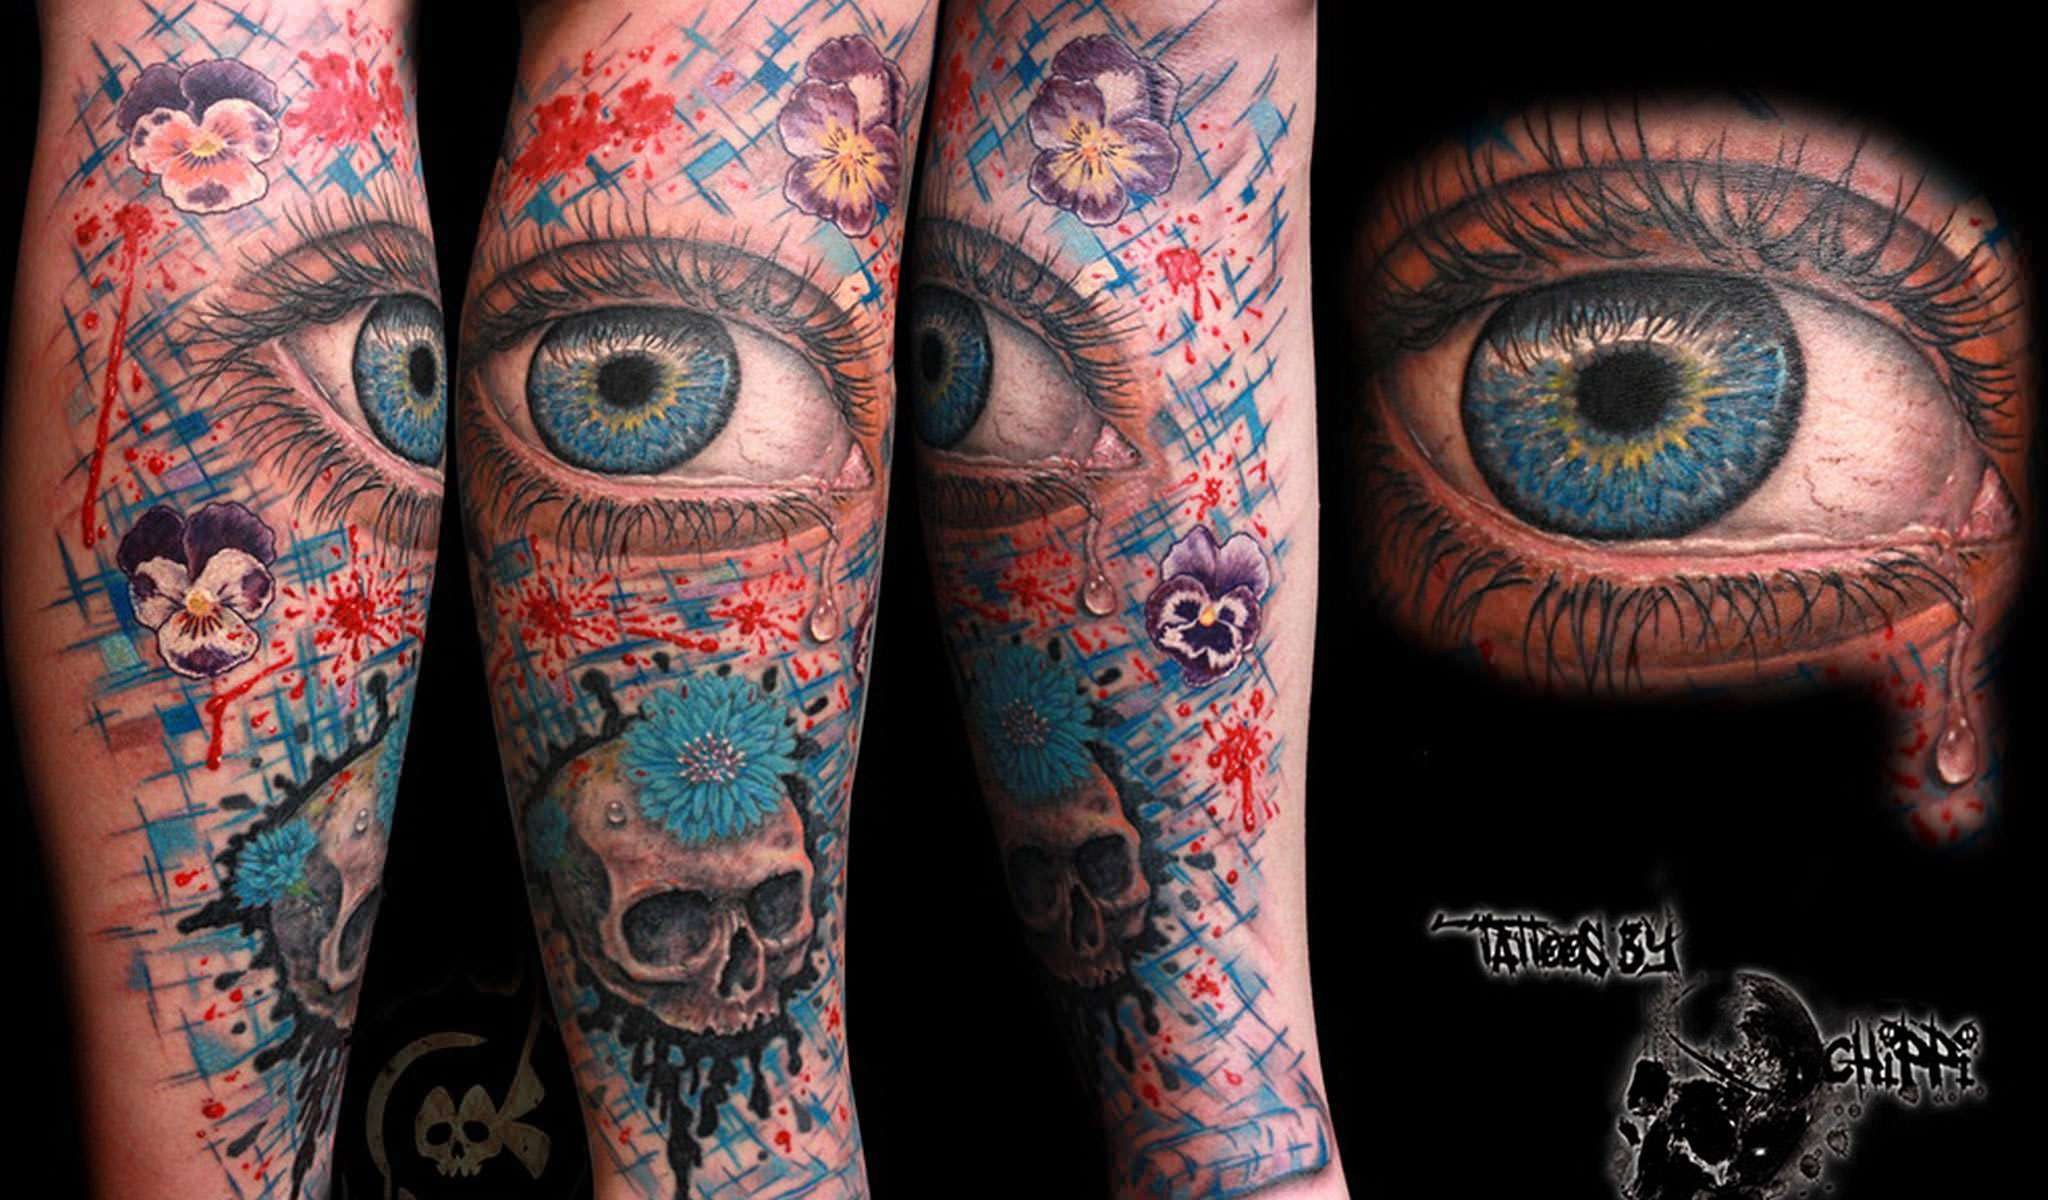 Chippi - Corpsepainter Tattoo* Germany